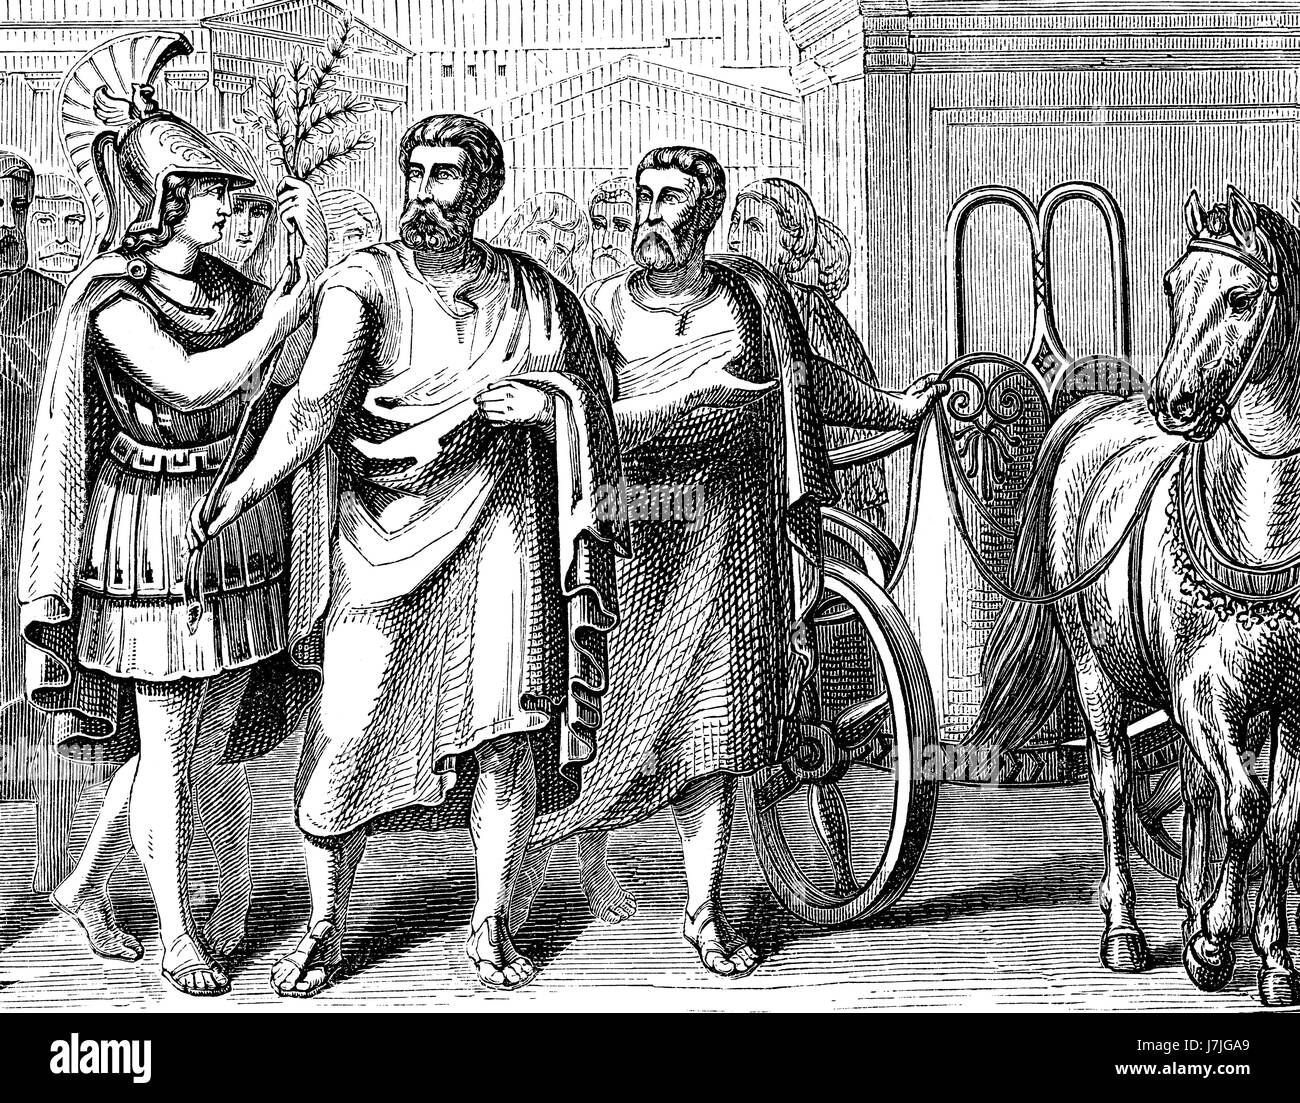 The returning of Cimon or Kimon, c.510-450 BC, an Athenian statesman and general in Ancient Greece - Stock Image